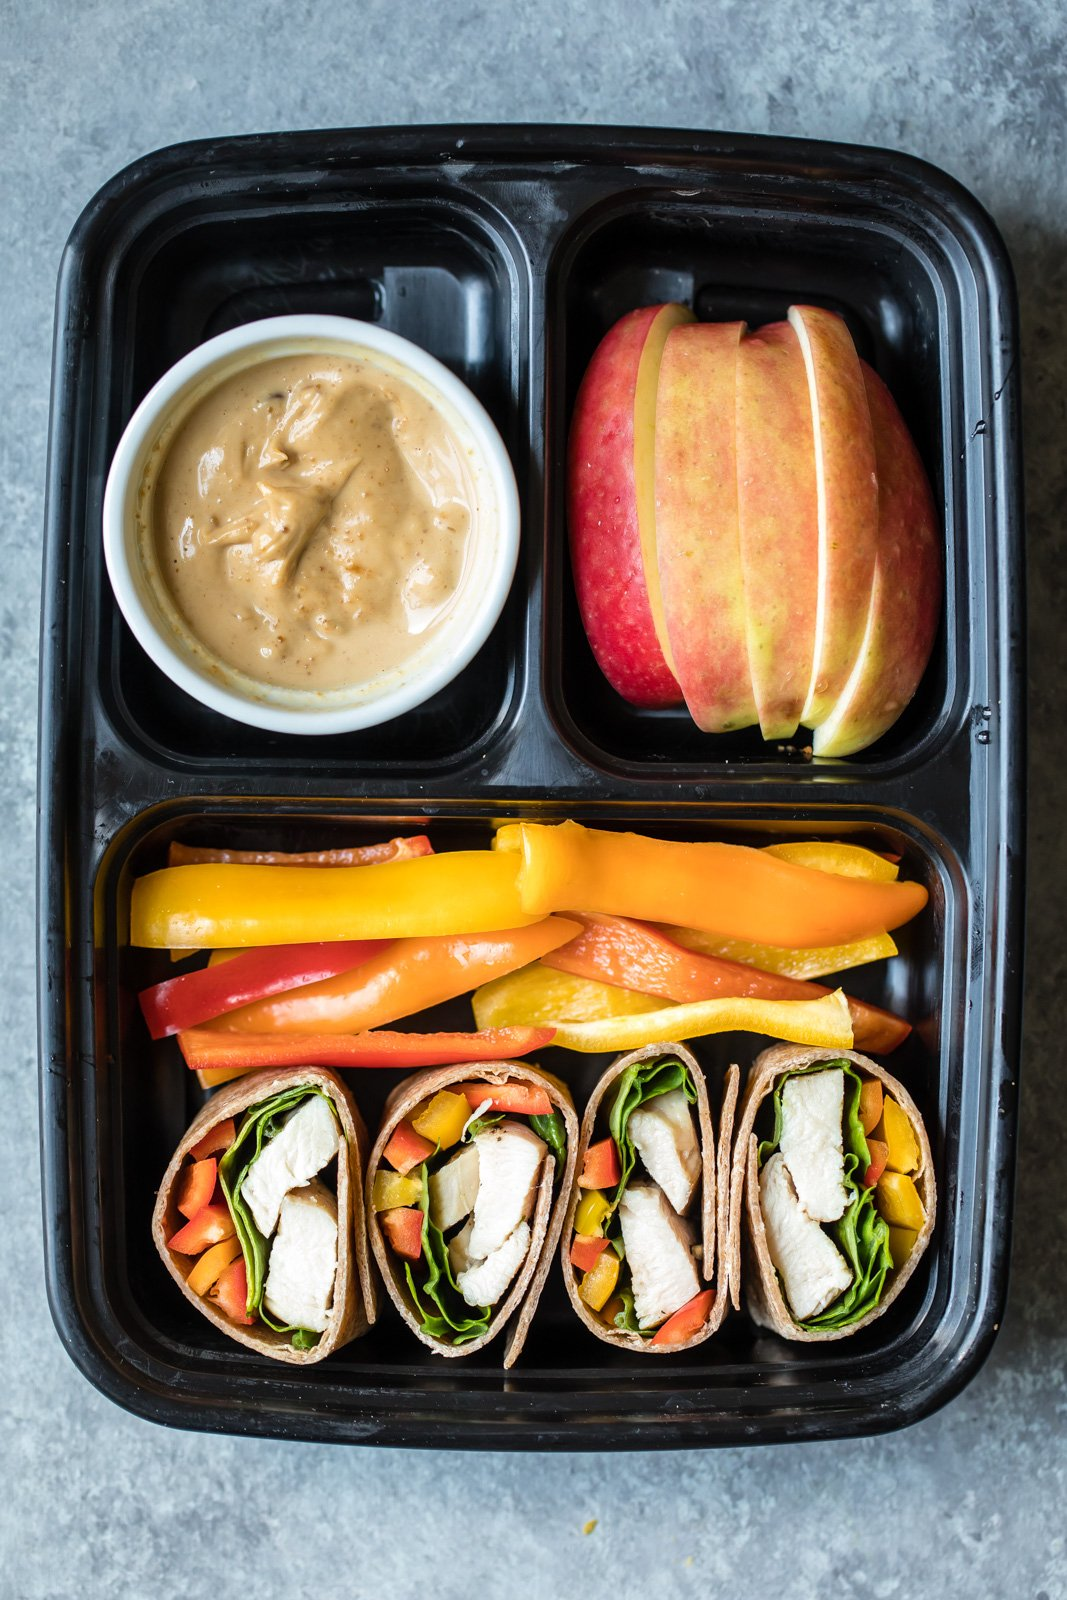 chicken wrap, peppers, apple slices, and peanut butter in a bento box